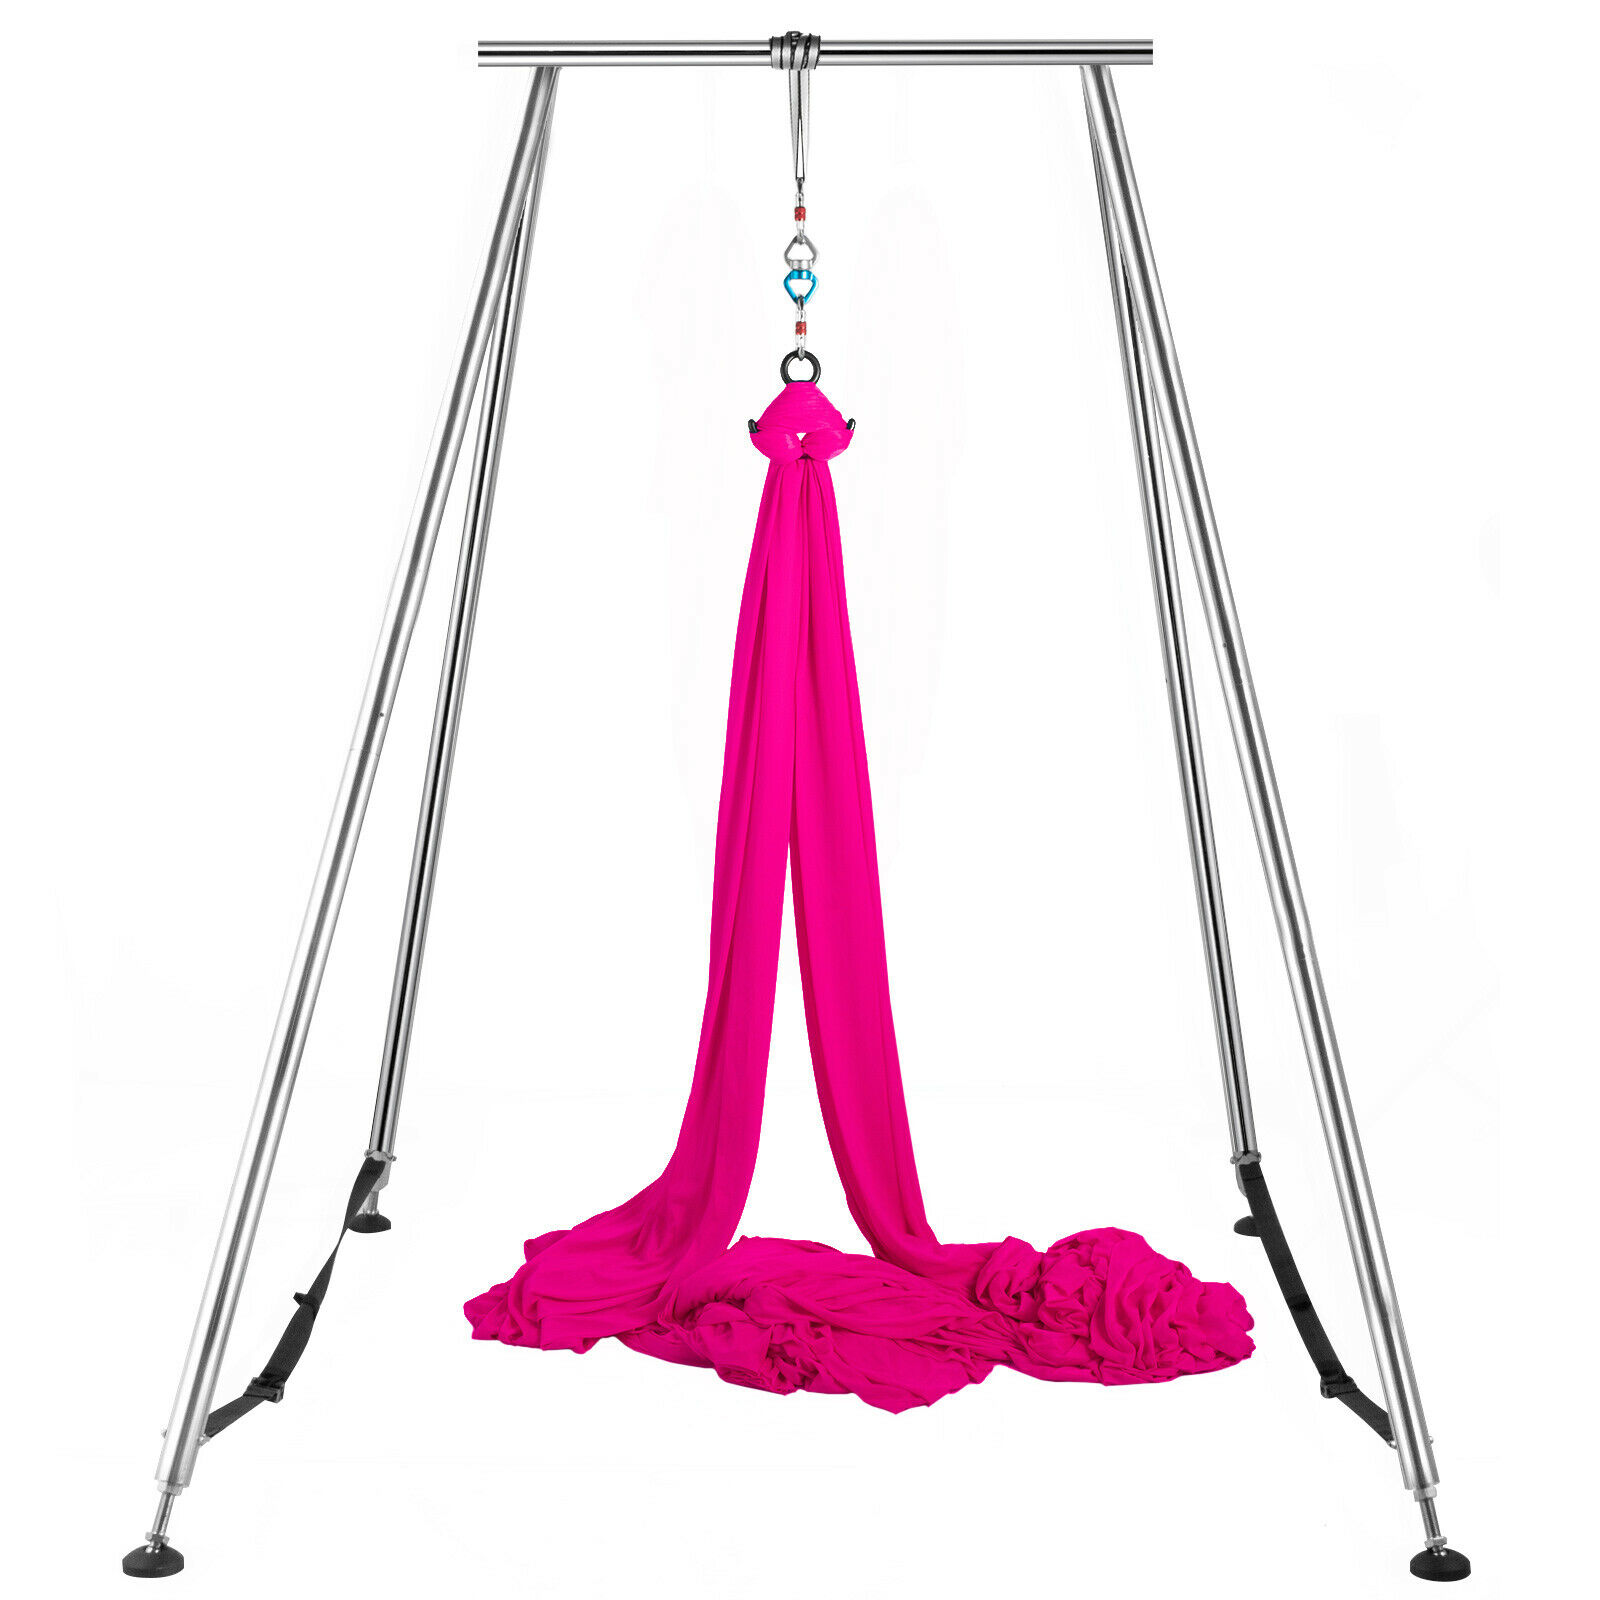 Details about  /Portable Aerial Yoga Frame Yoga Stand Steel Pipe Yoga Swing Stand Fitness Gym